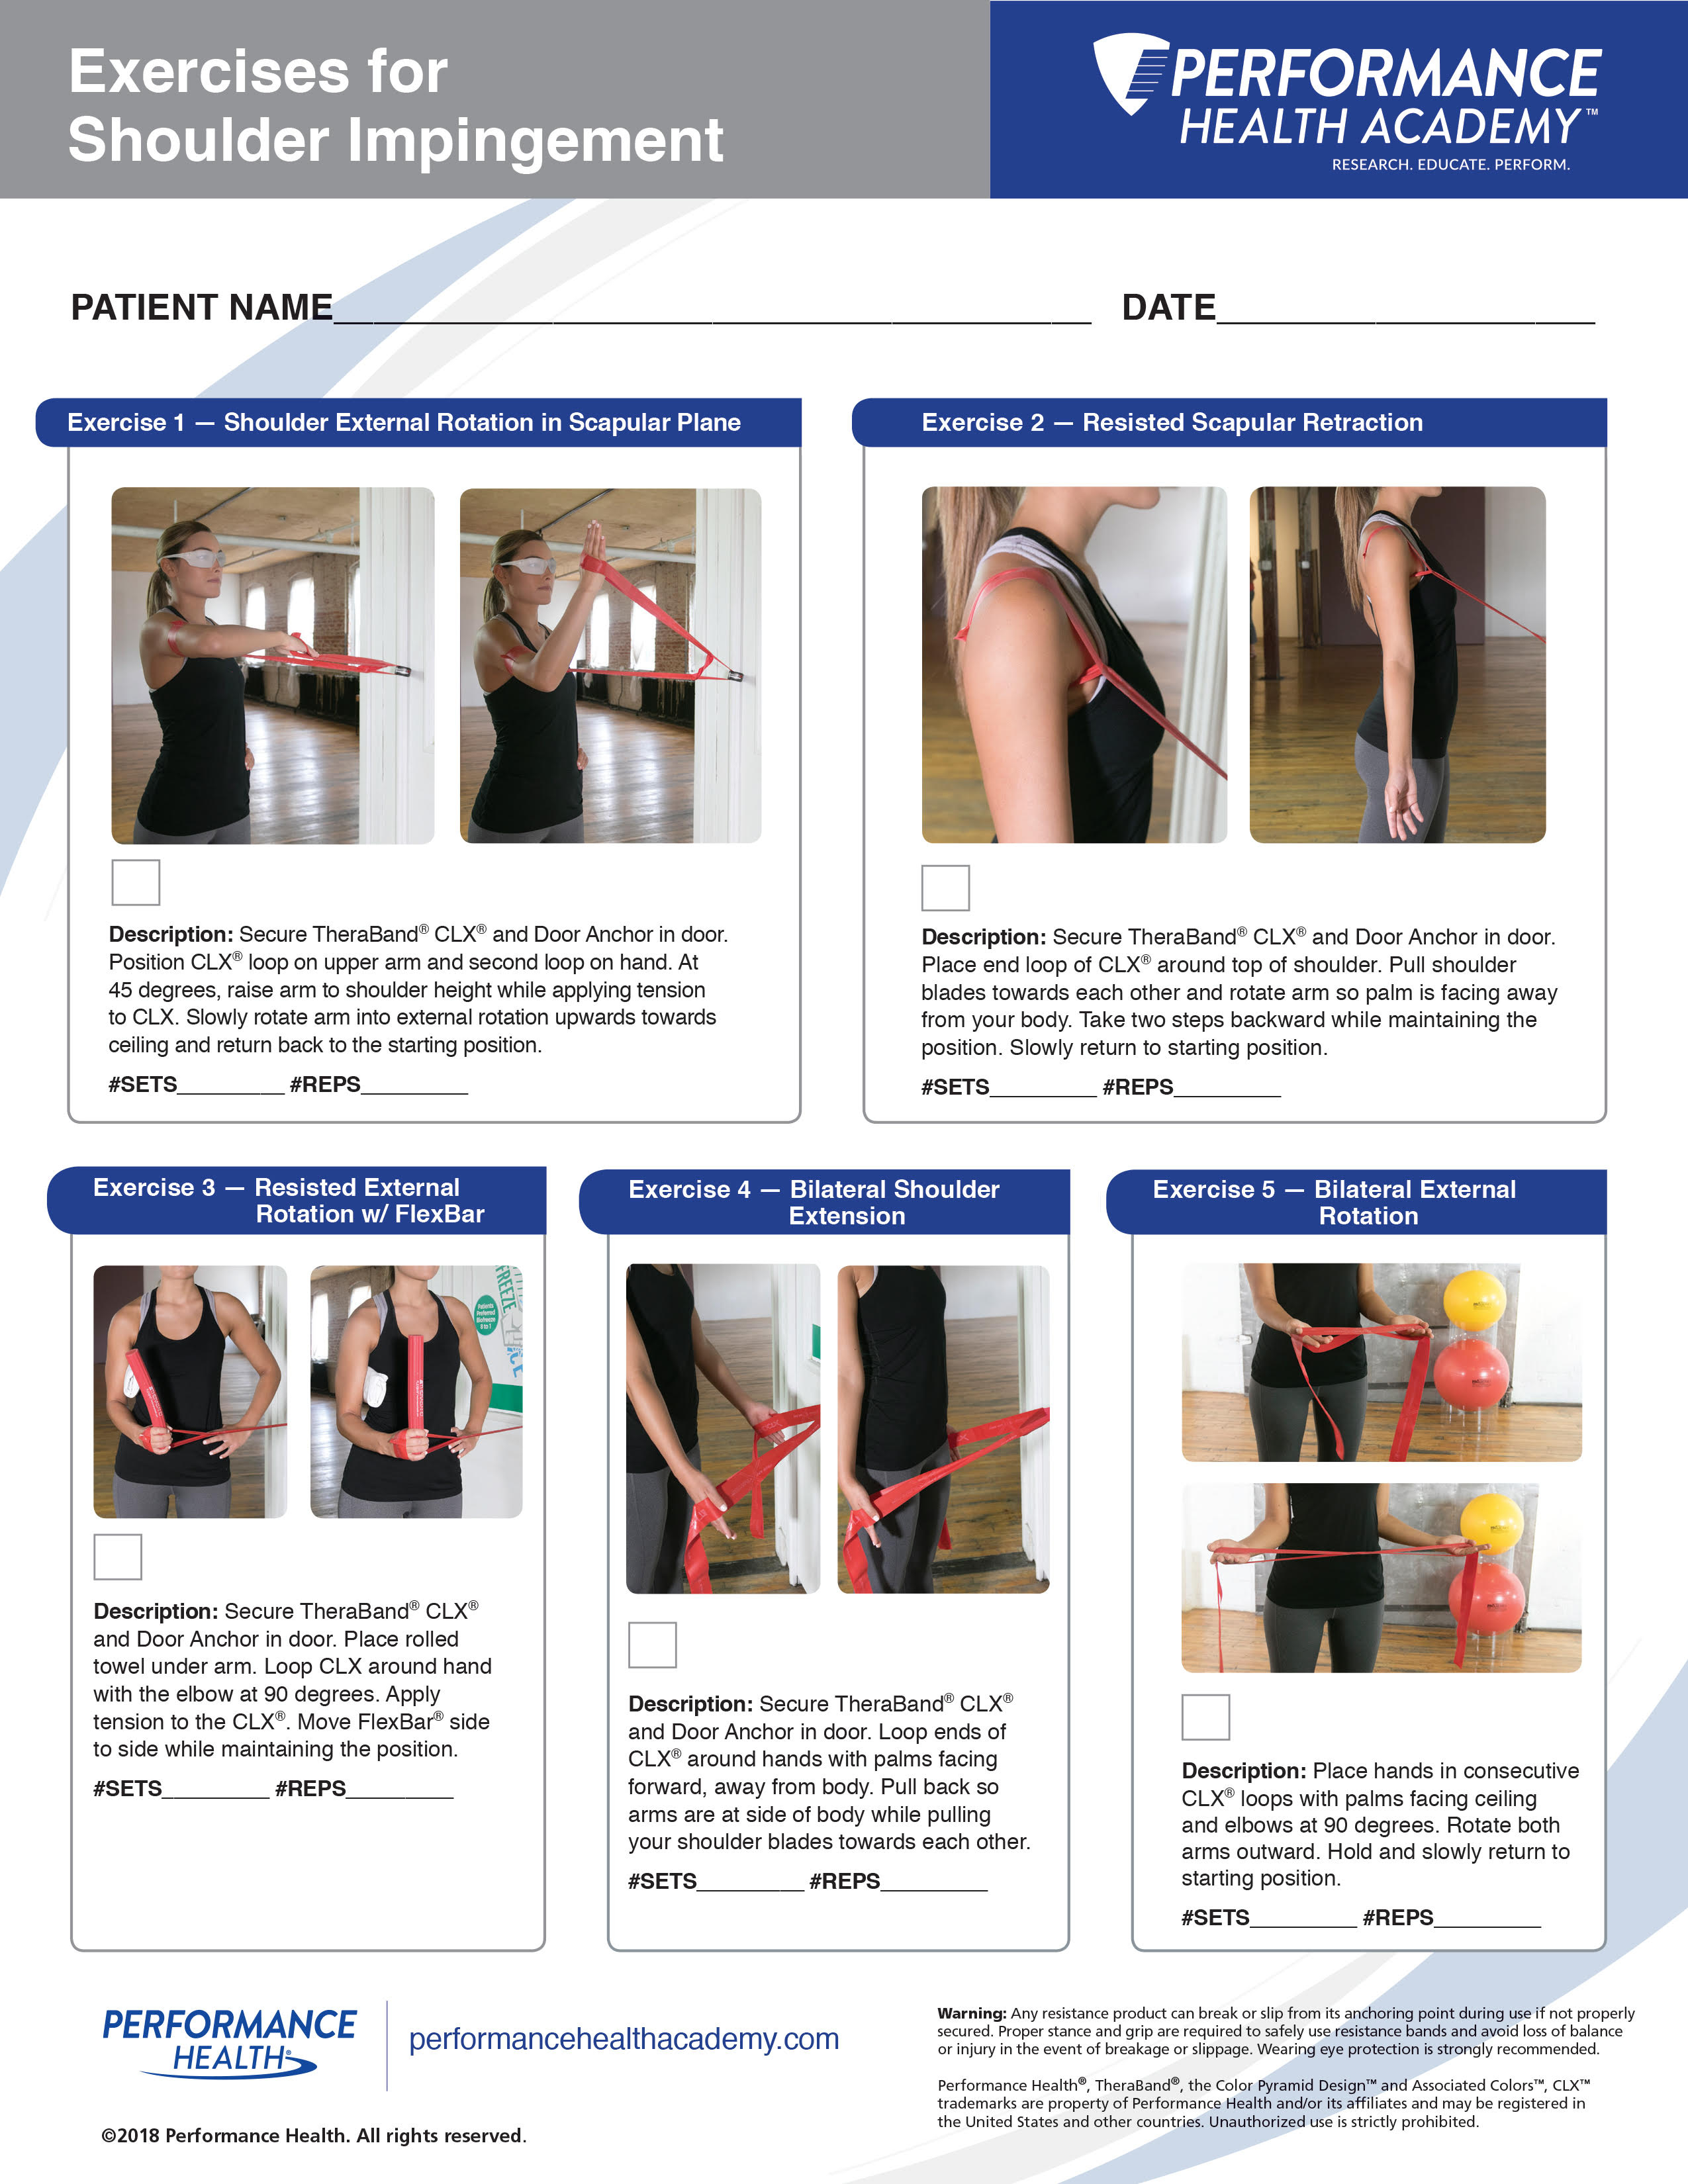 Exercises for Rotator Cuff